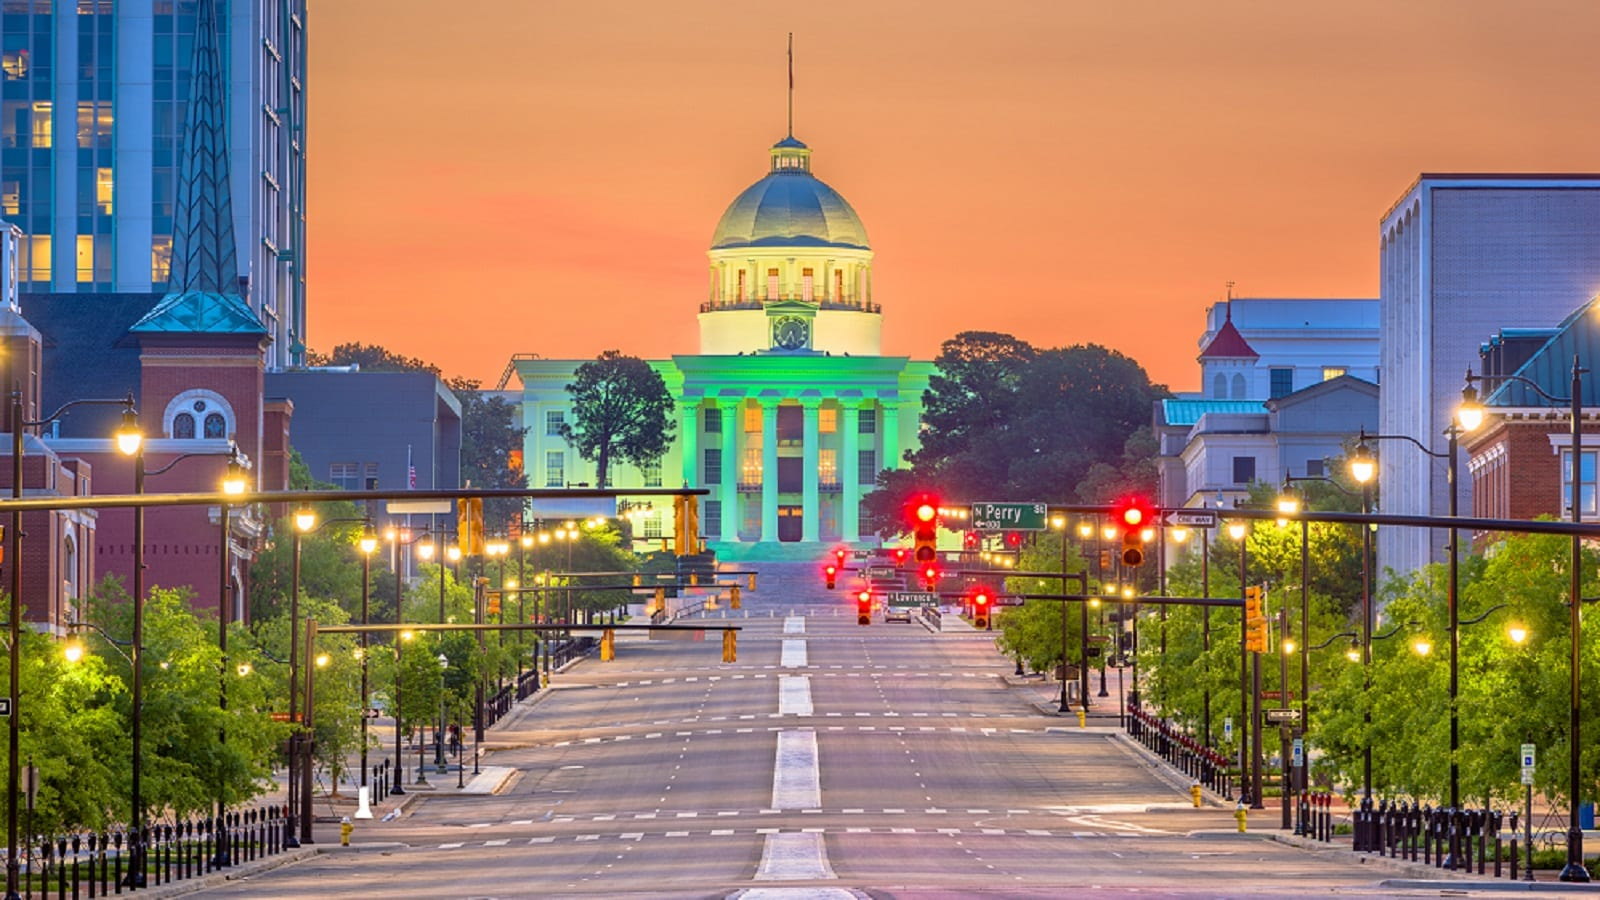 Alabama State Capitol In Montgomery, Alabama Stock Photo